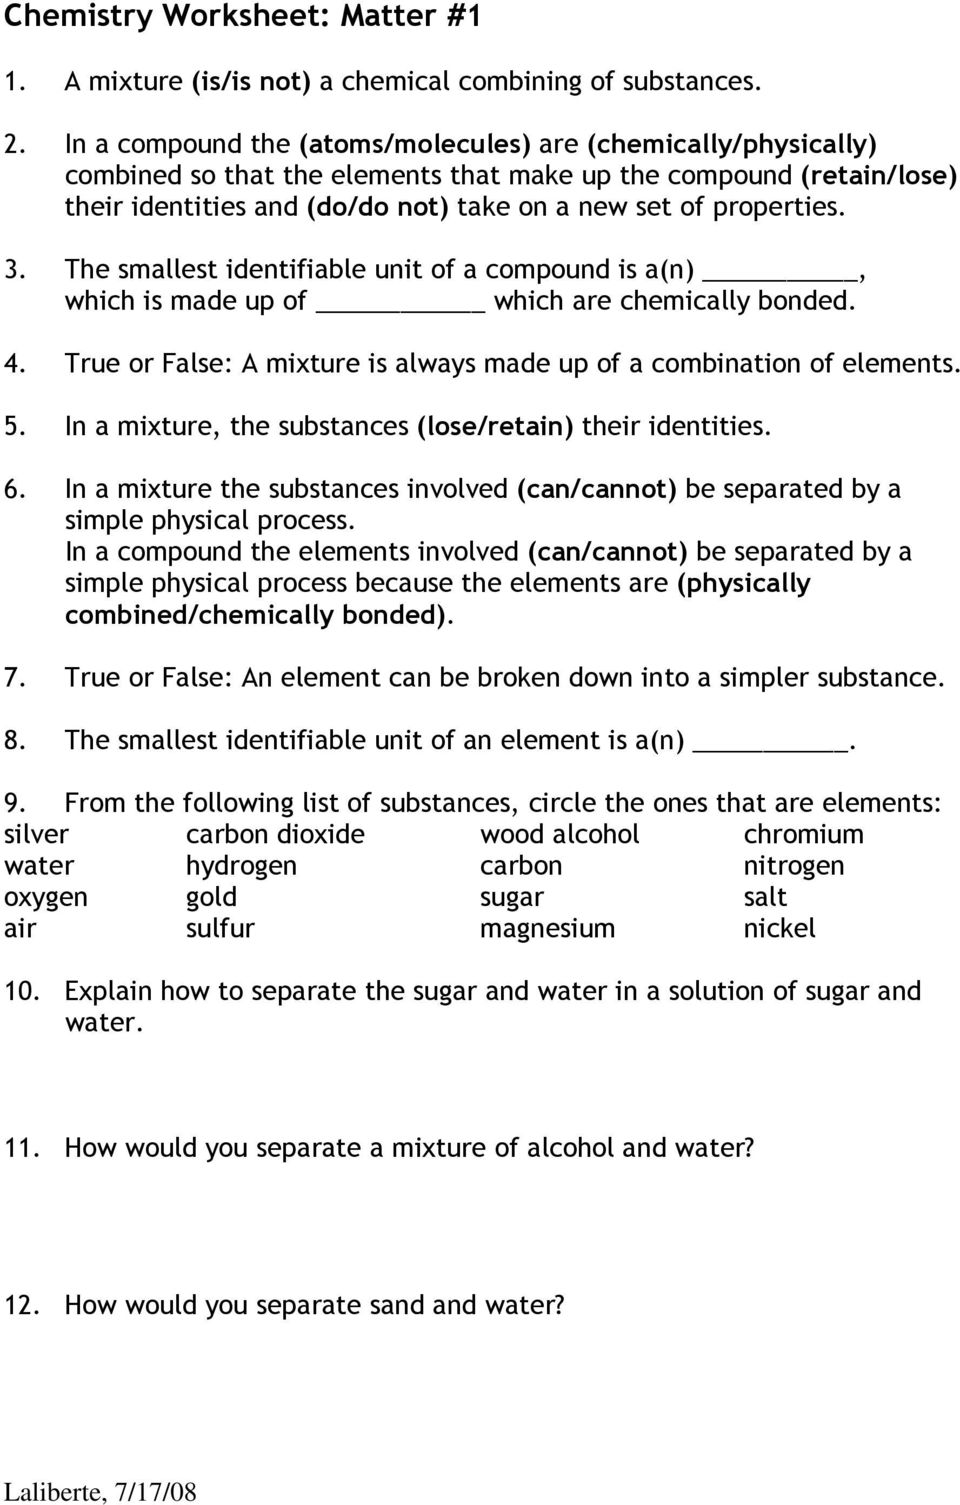 Chemistry Worksheet Matter 1 PDF – Worksheet Classification of Matter